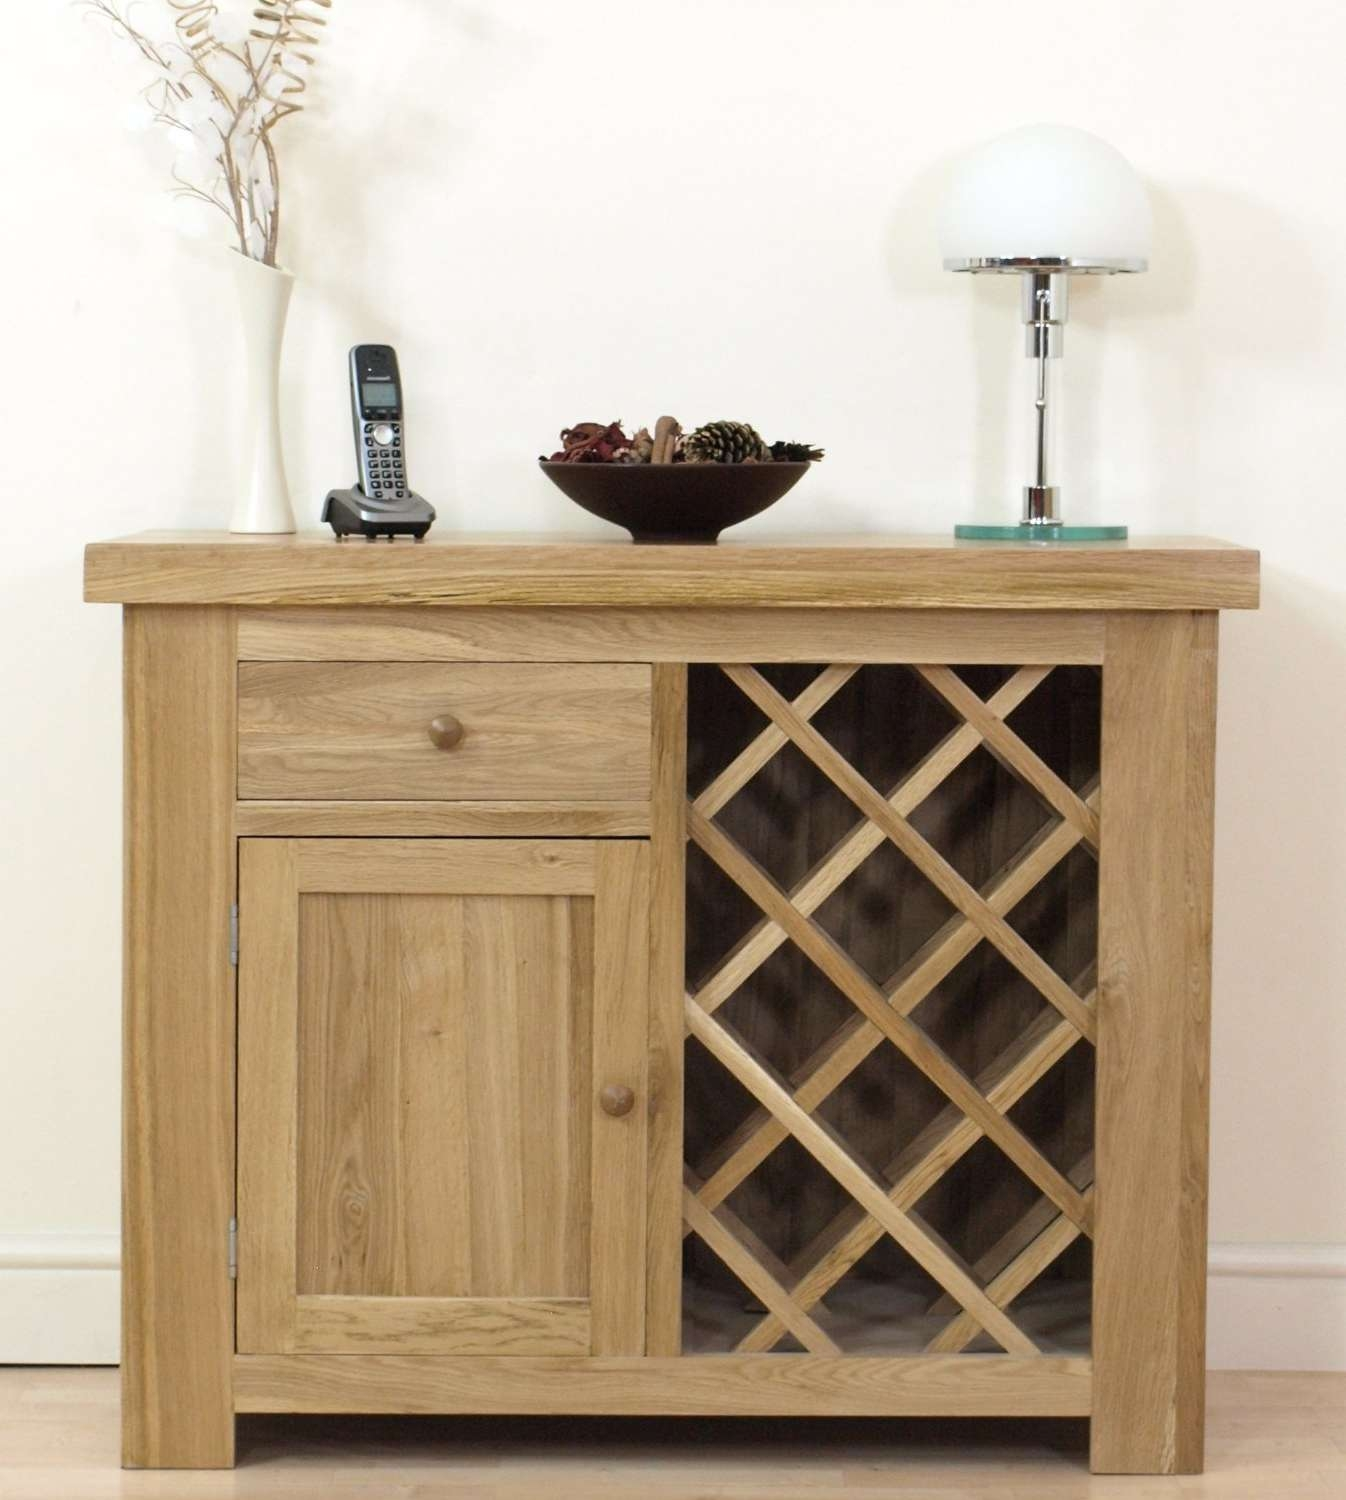 Oak Sideboard With Wine Rack | Home Design Ideas Intended For Sideboards With Wine Rack (View 11 of 20)